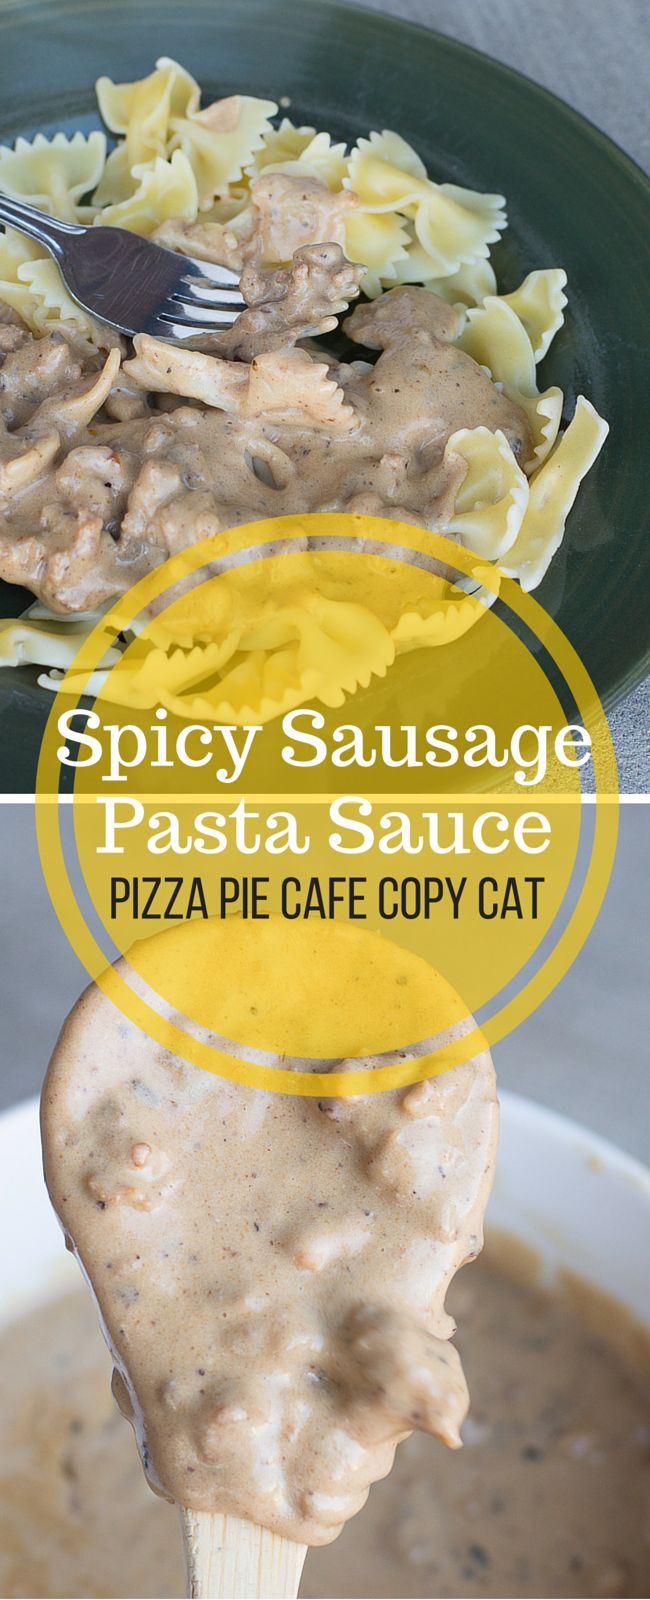 Spicy Sausage Pasta Sauce - Pizza Pie Cafe Copy Cat. So good over farfalle!